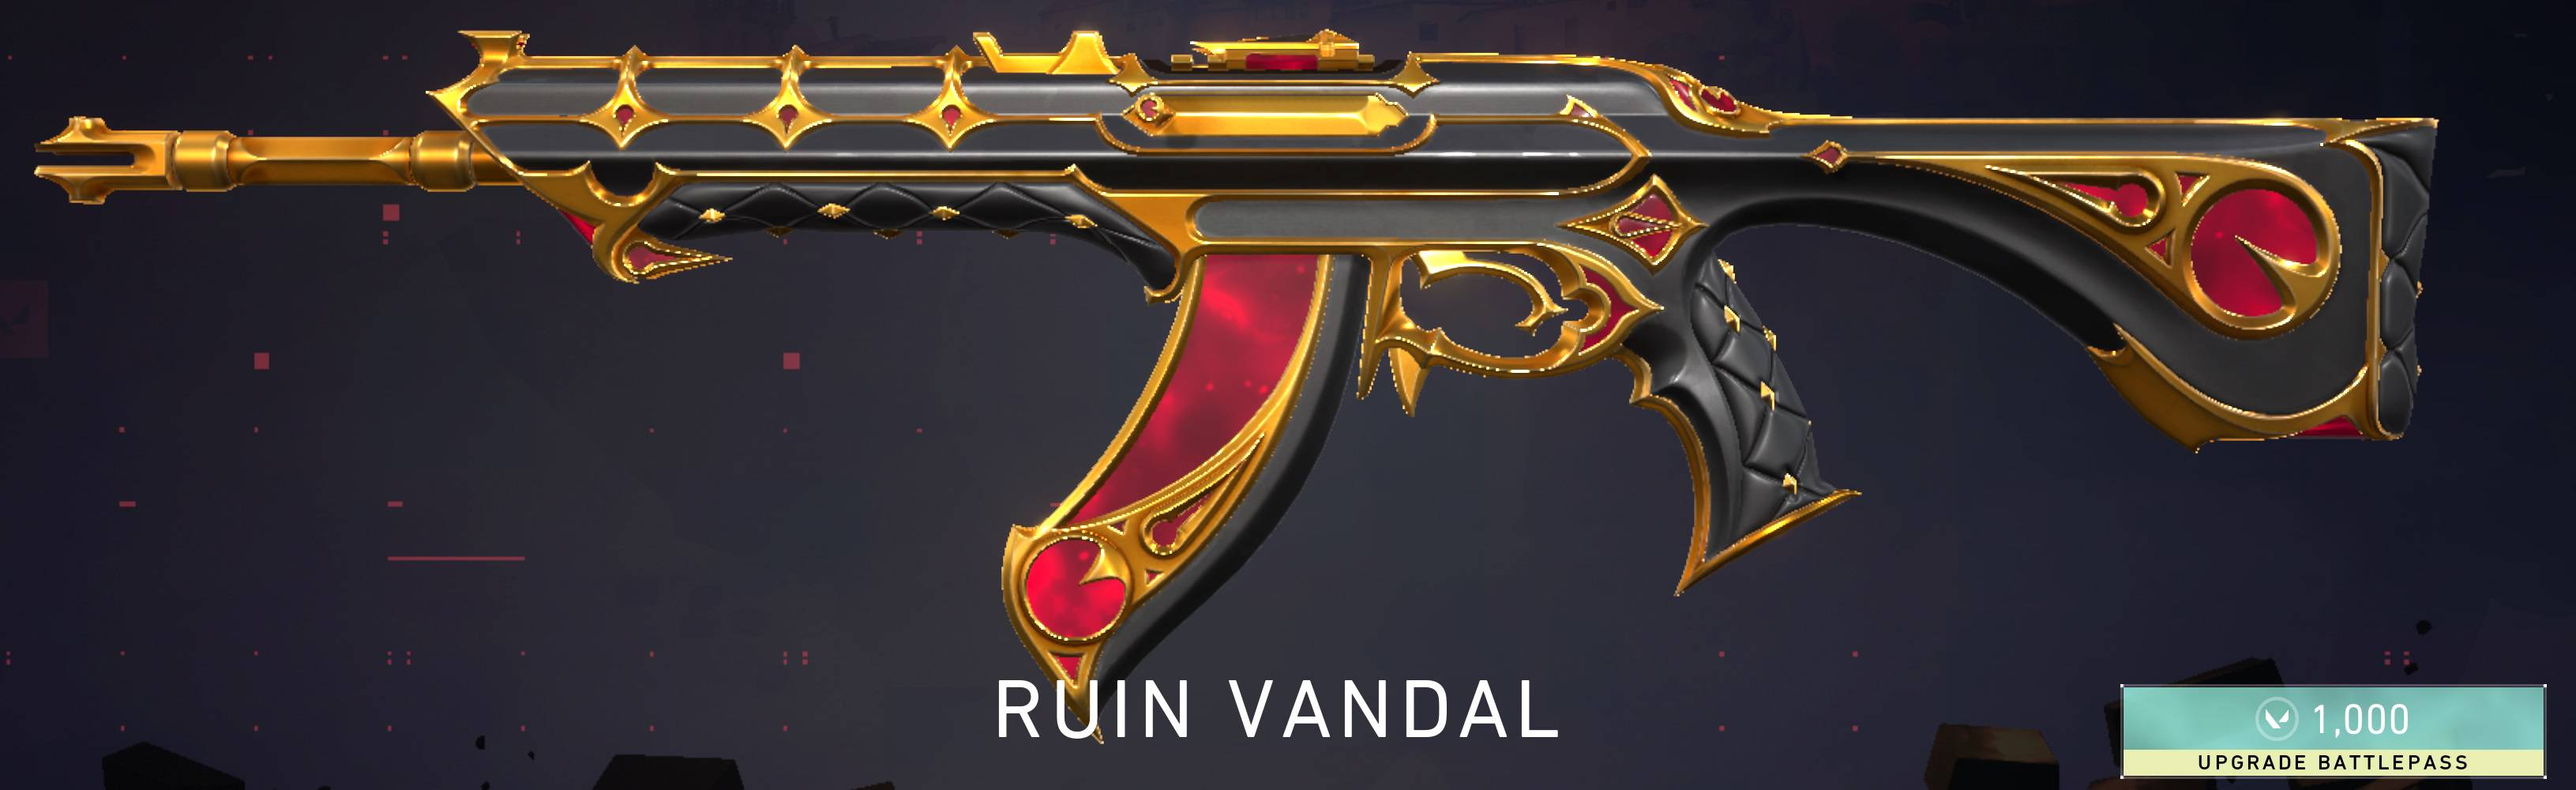 The Ruin Vandal skin is available at tier 45.